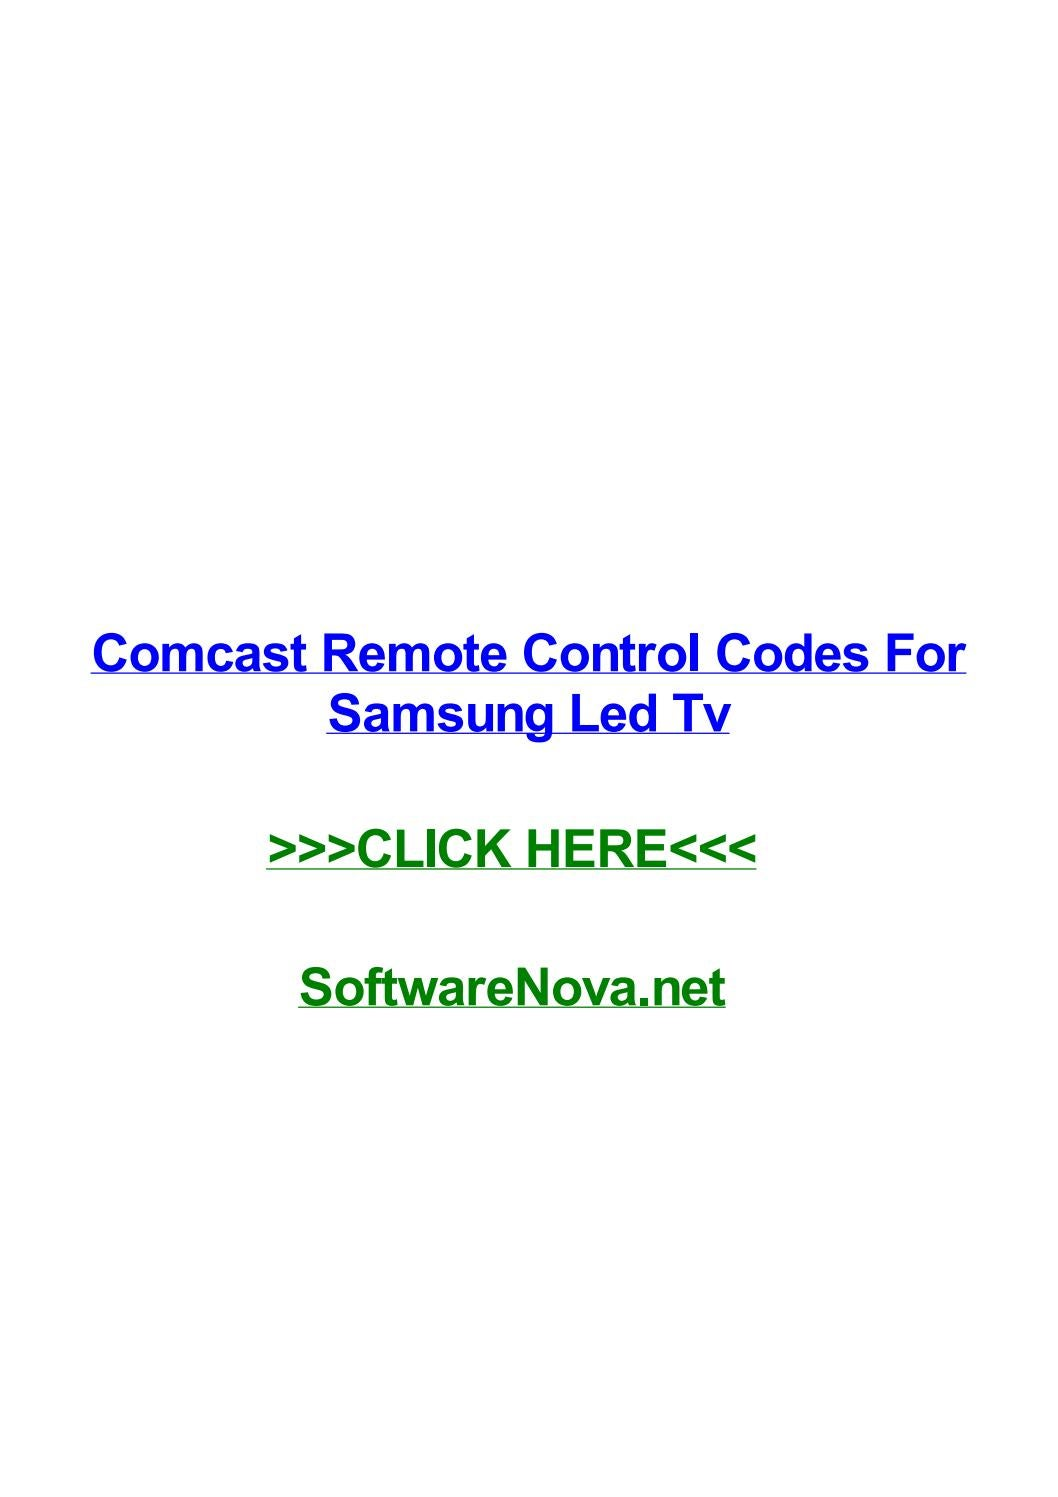 Comcast Remote Control Codes For Samsung Led Tv By Albertozsbdr Issuu